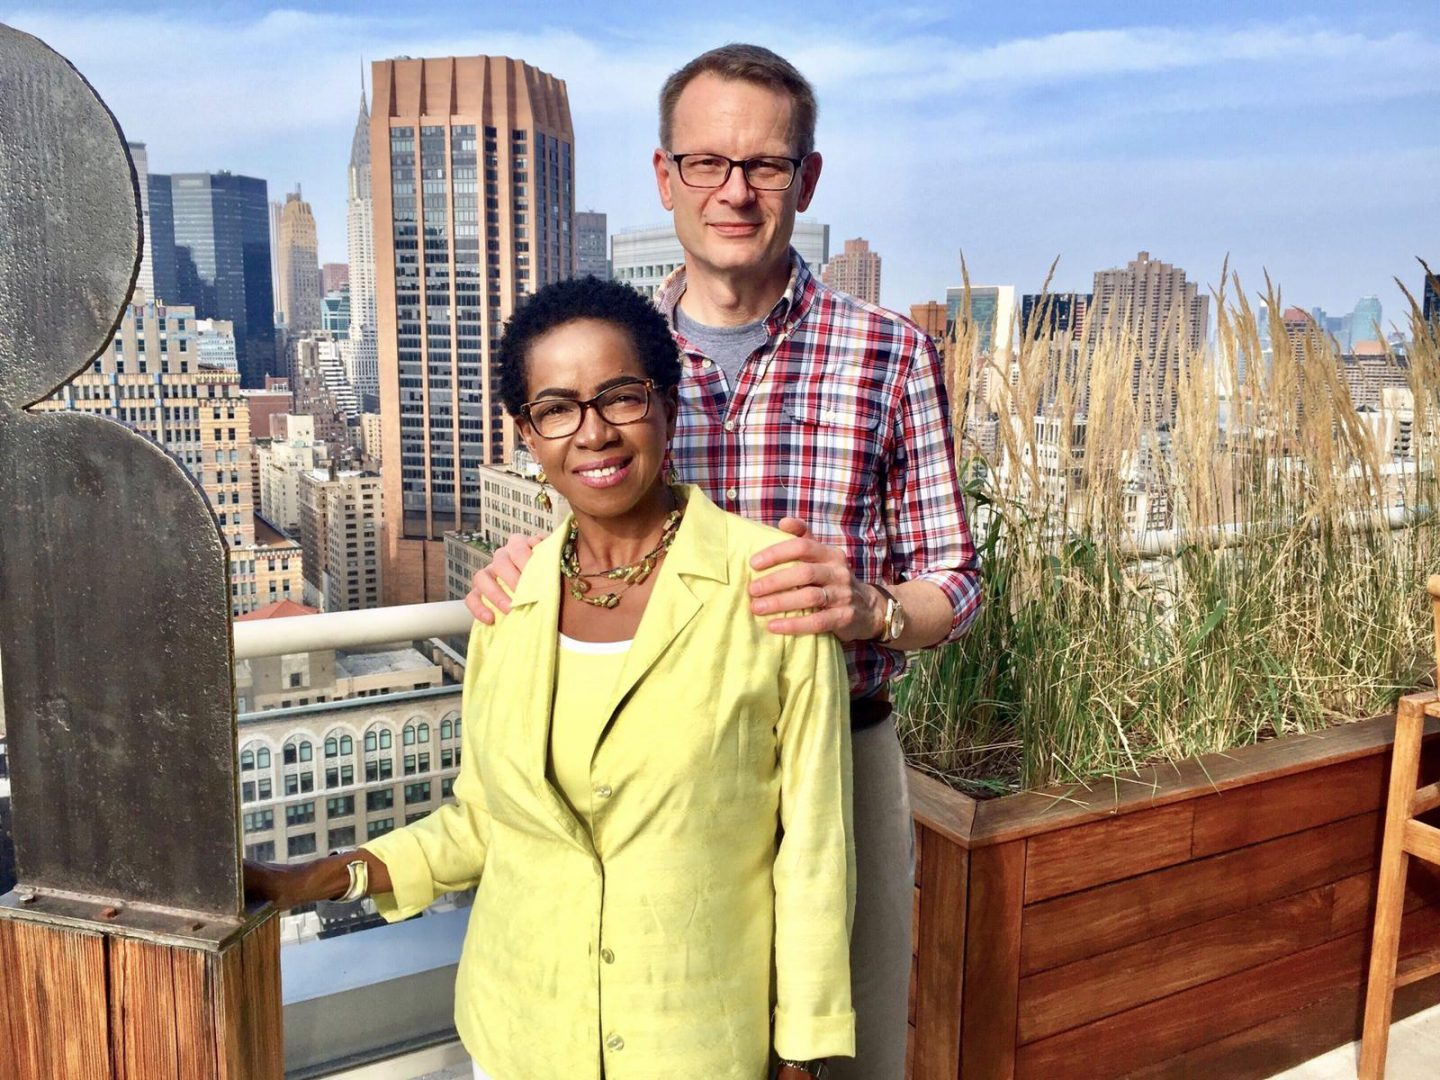 In March 2017, Francis relocated to Singapore with her husband. Photo of Judith Francis with her husband taken in New York City.